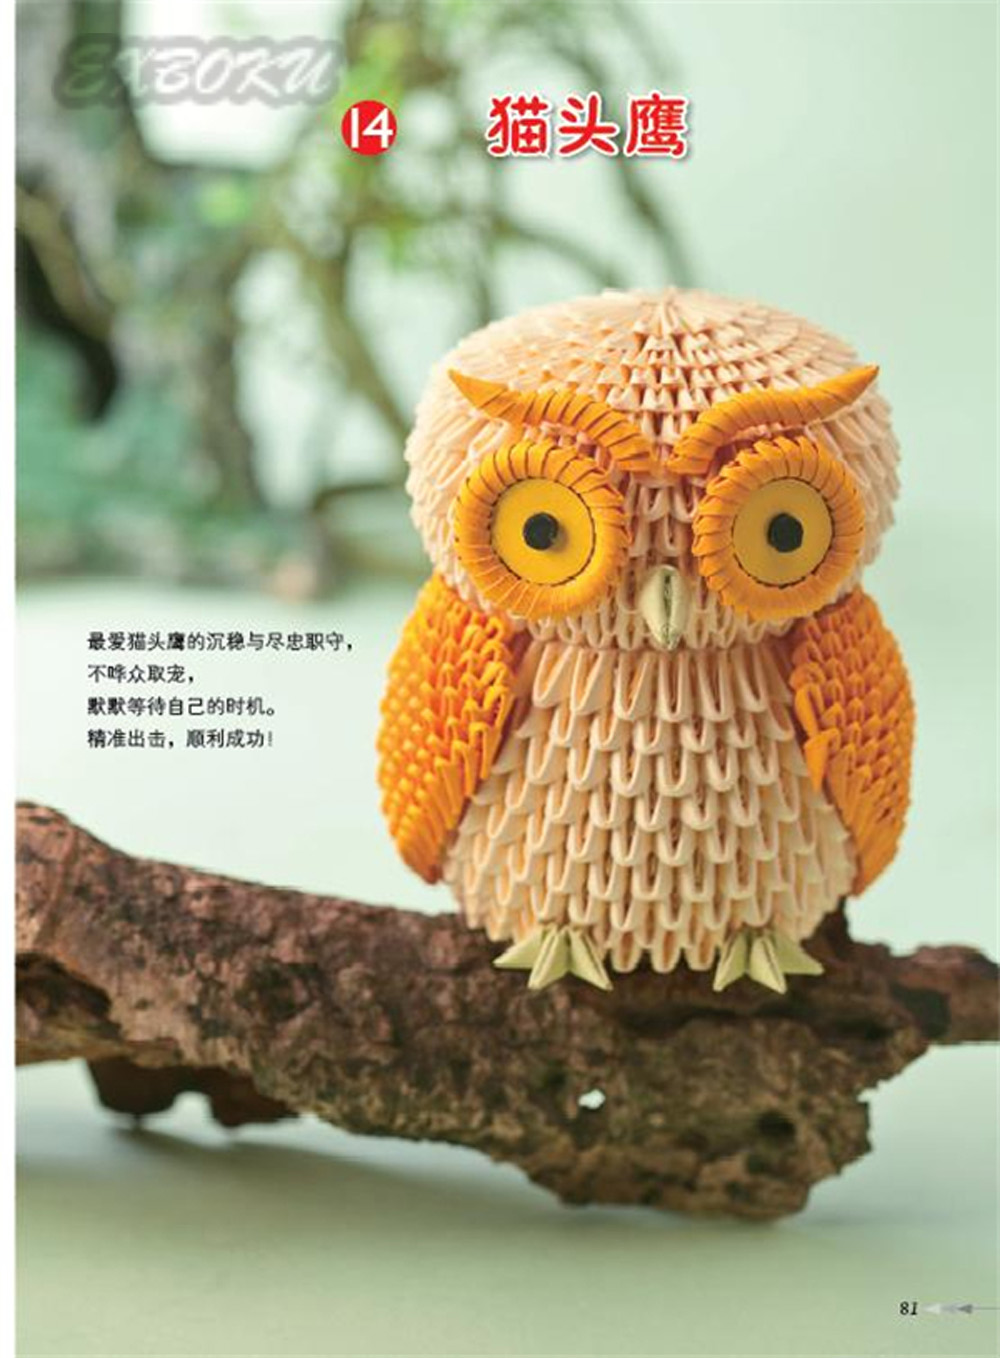 Chinese japanese origami 3d paper craft book swan owl vase basket chinese japanese origami 3d paper craft book swan owl vase basket bicycle in books from office school supplies on aliexpress alibaba group reviewsmspy